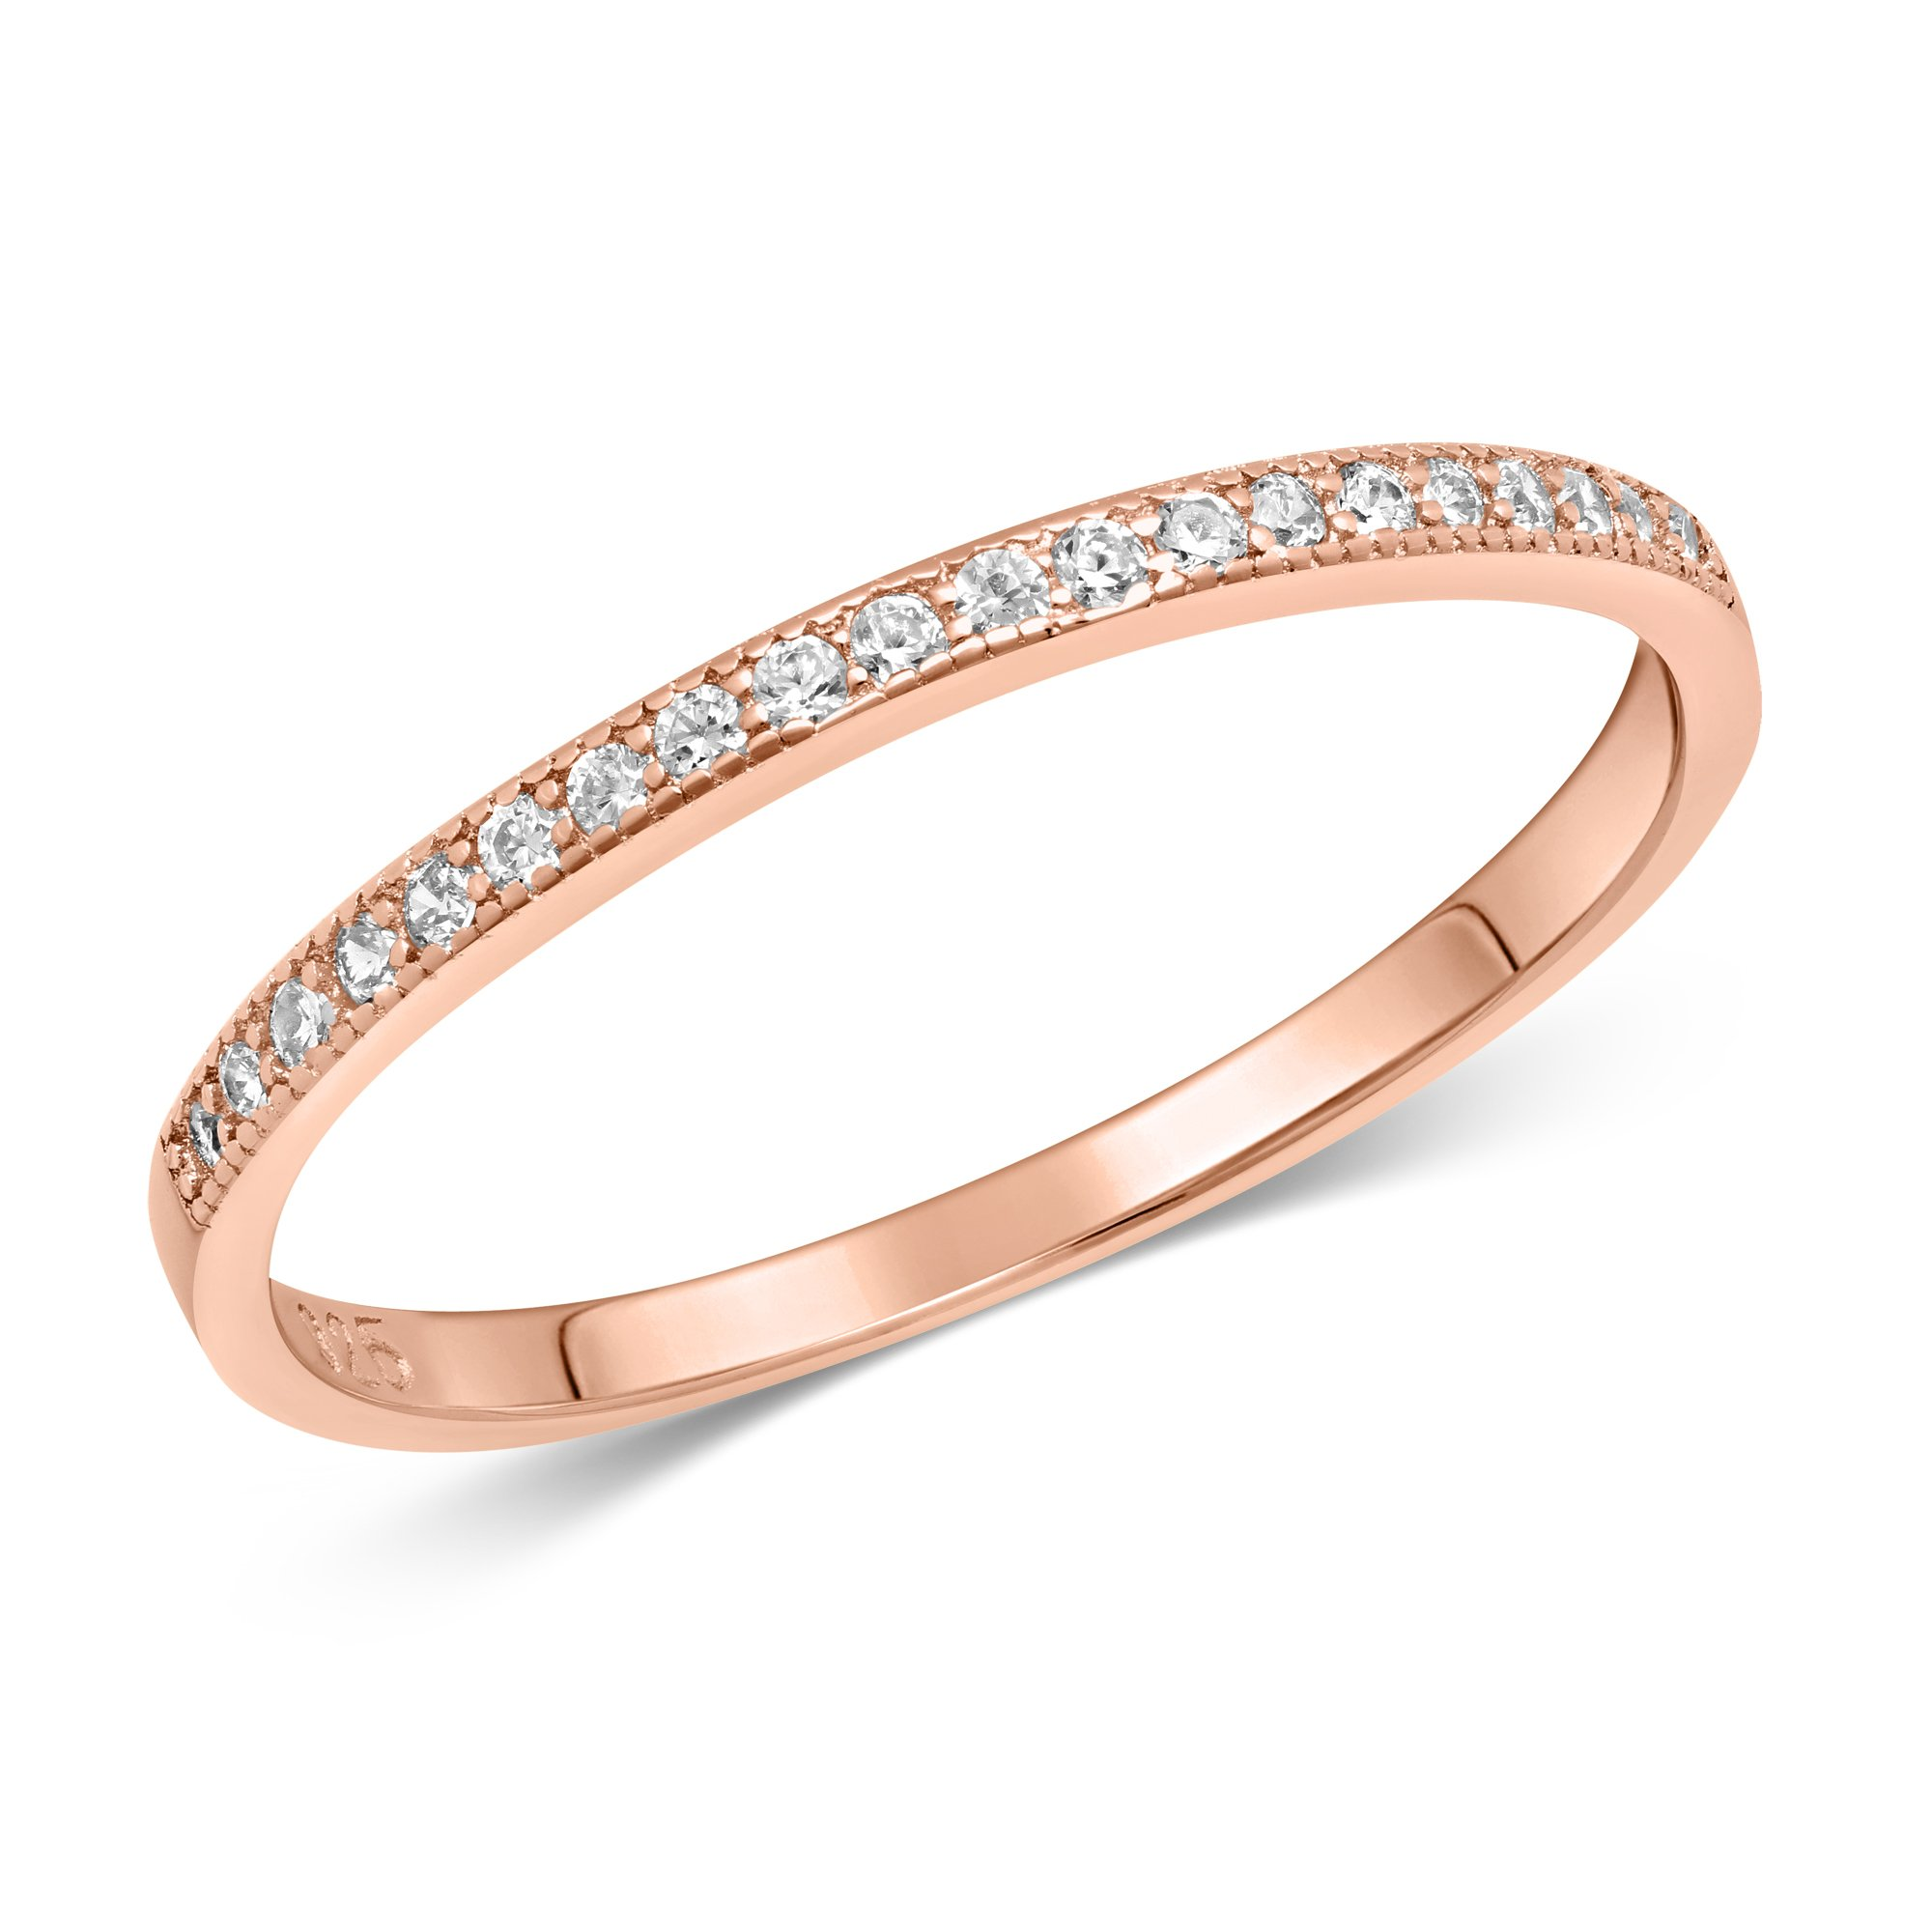 DTLA Sterling Silver Stackable Cubic Zirconia Half Eternity Band Ring - Rose Gold Plated - Size 7